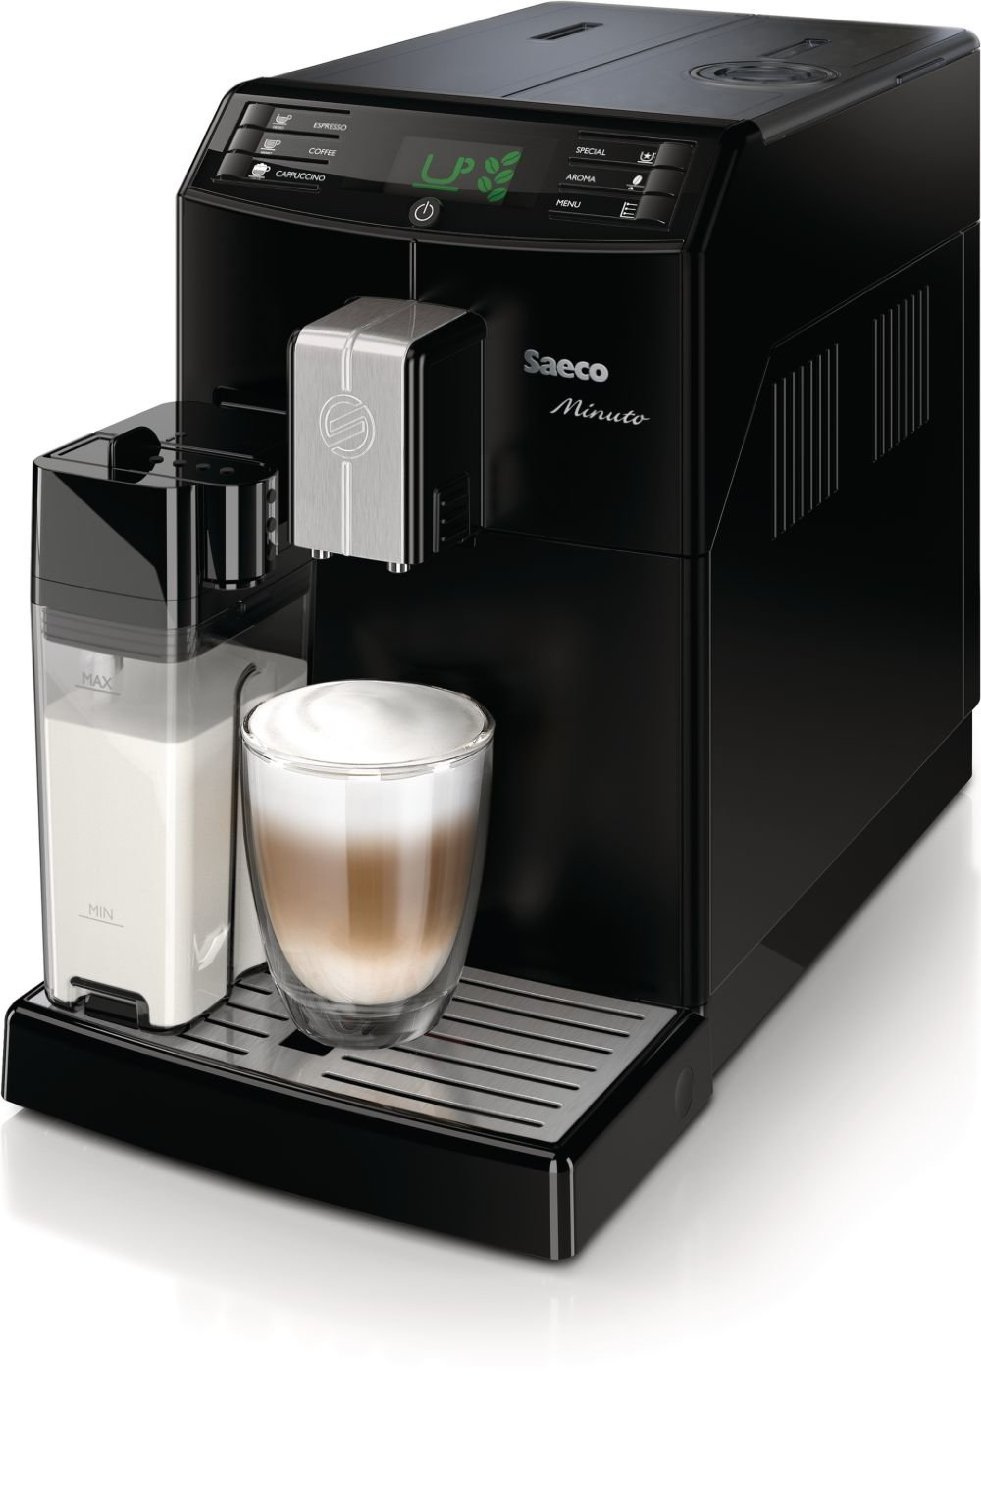 Kaffeevollautomat Tollautomat Test Saeco HD8763 Minutoest Saeco HD8763 Minuto One Touch